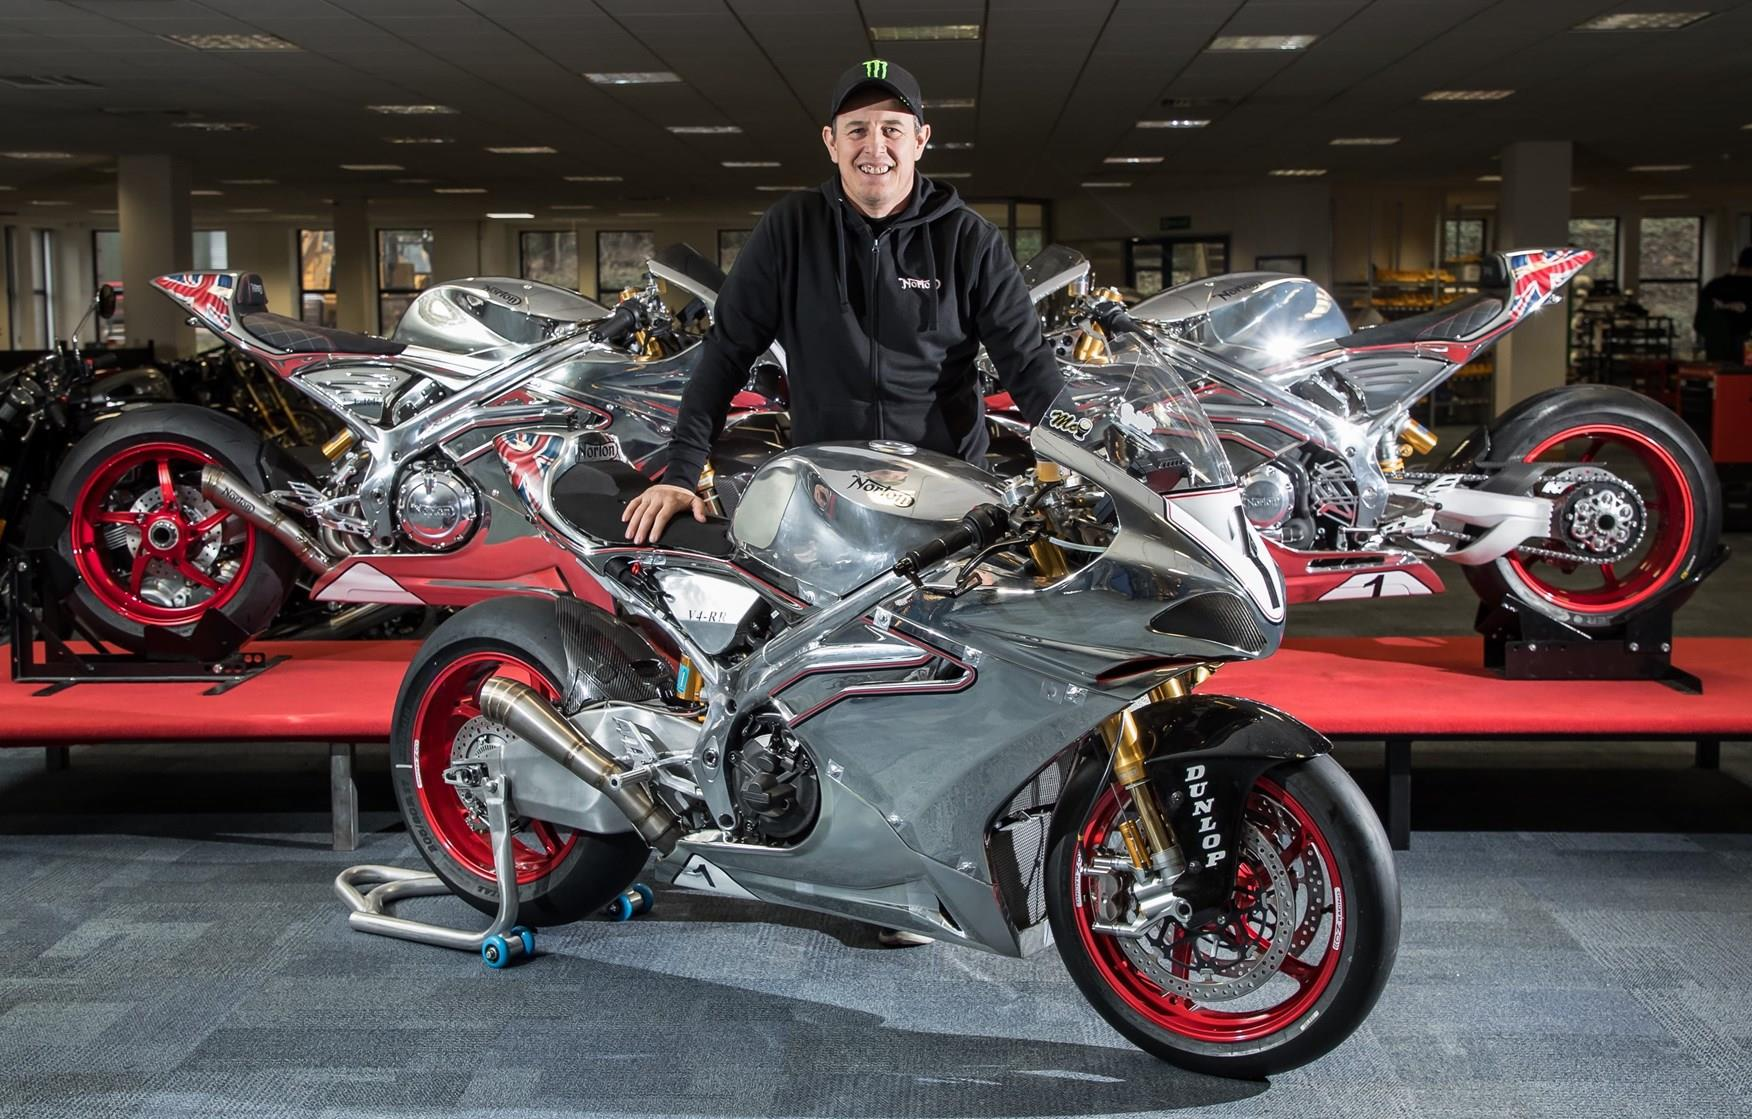 McGuinness with Nortons